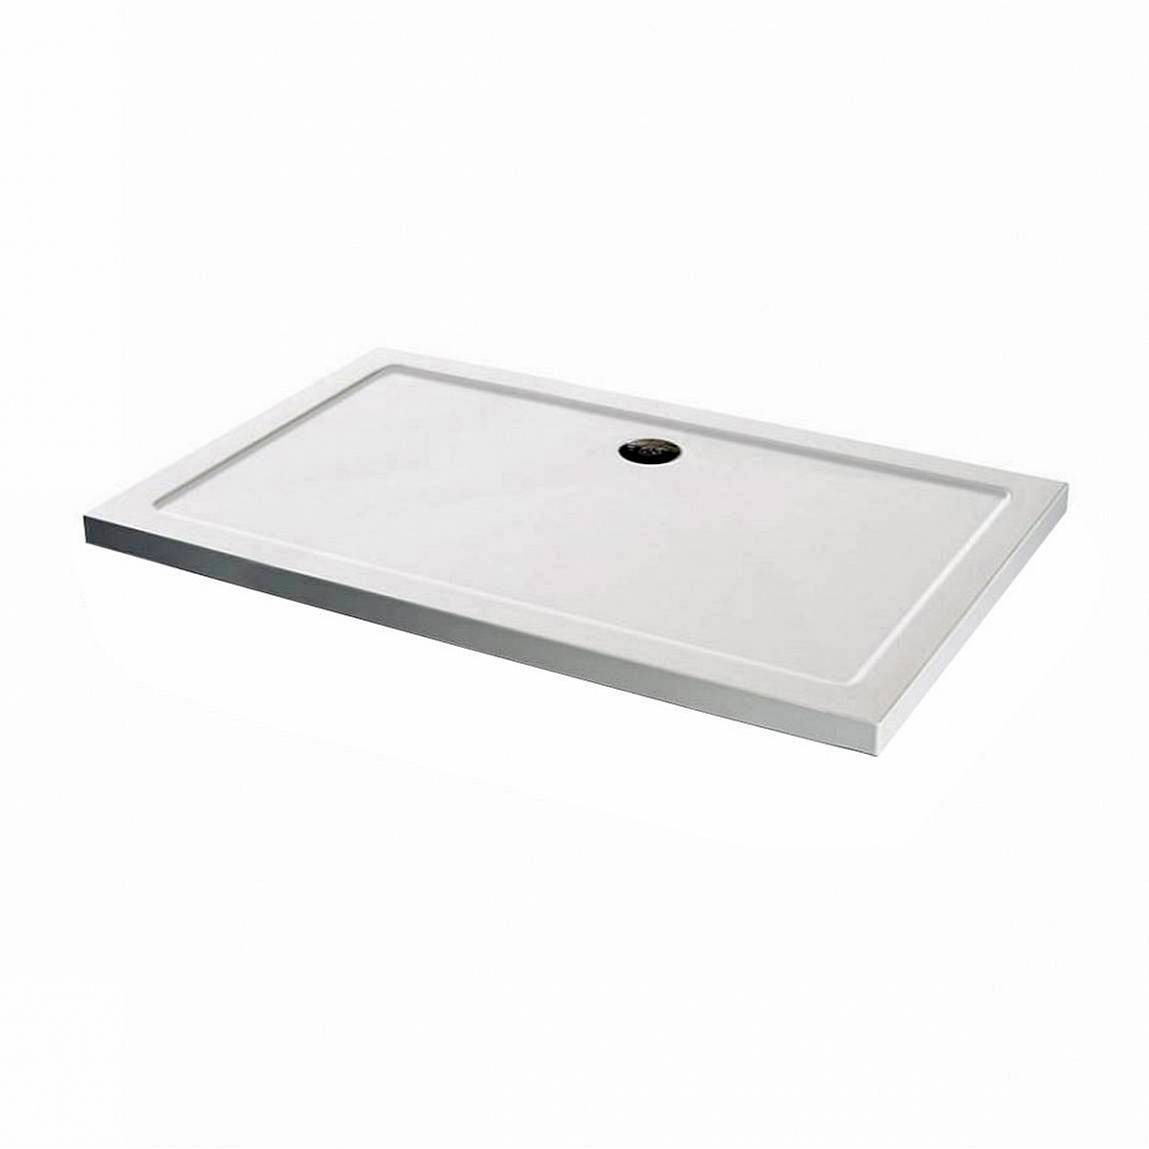 Image of Rectangular Stone Shower Tray 1200 x 760